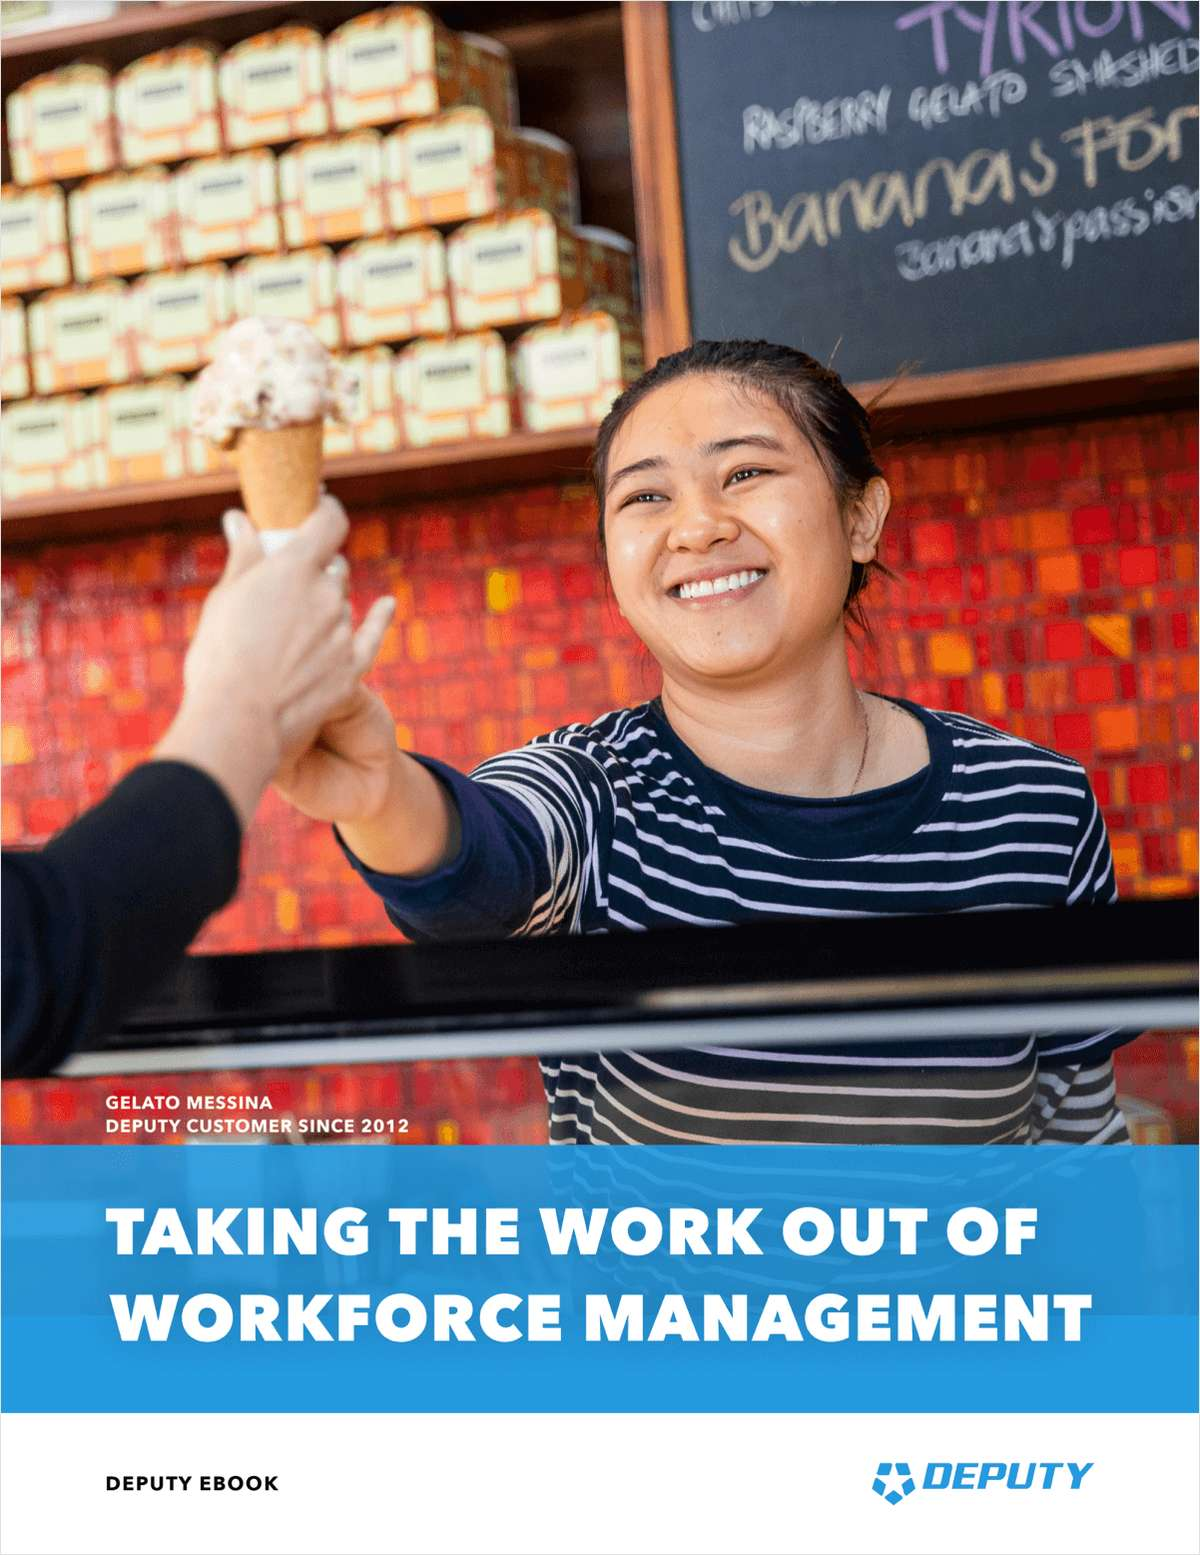 Taking the Work Out of Workforce Management